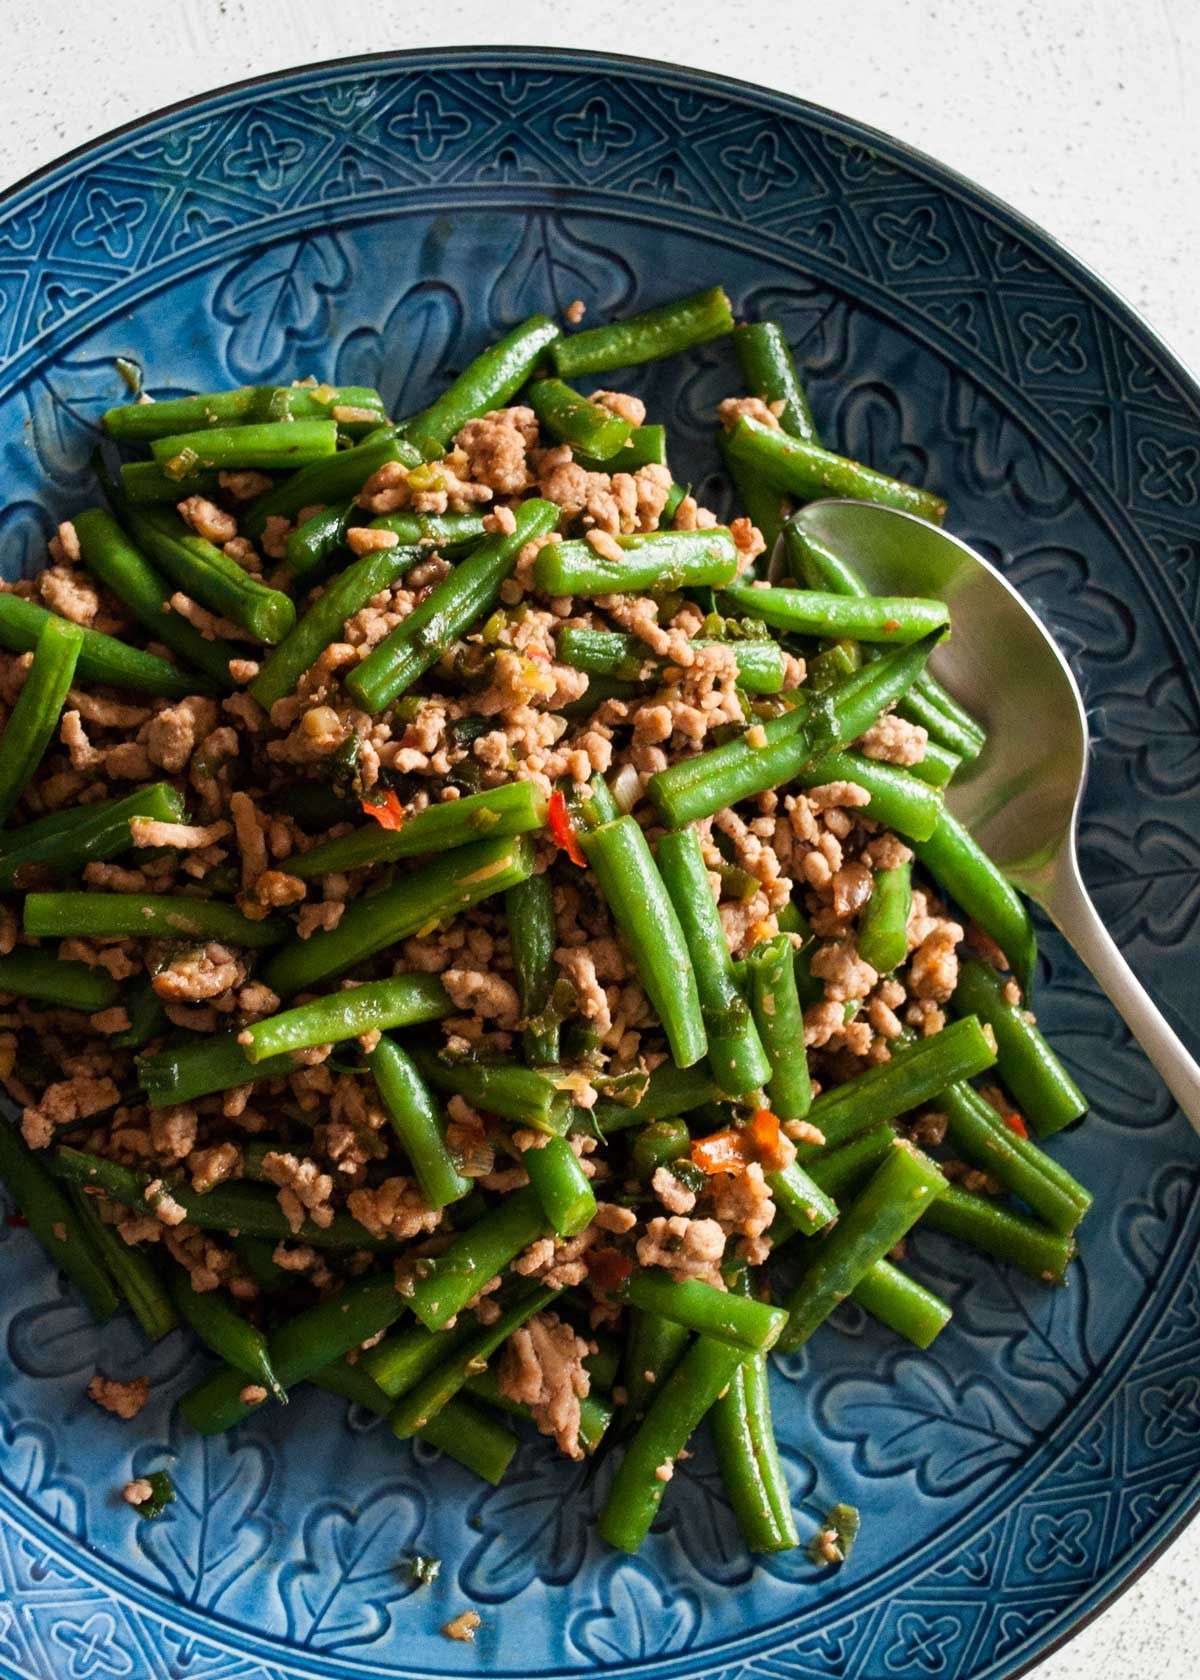 Beans And Pork Mince Stir Fry Recipetin Japan Recipe Pork Mince Recipes Pork And Green Beans Recipes